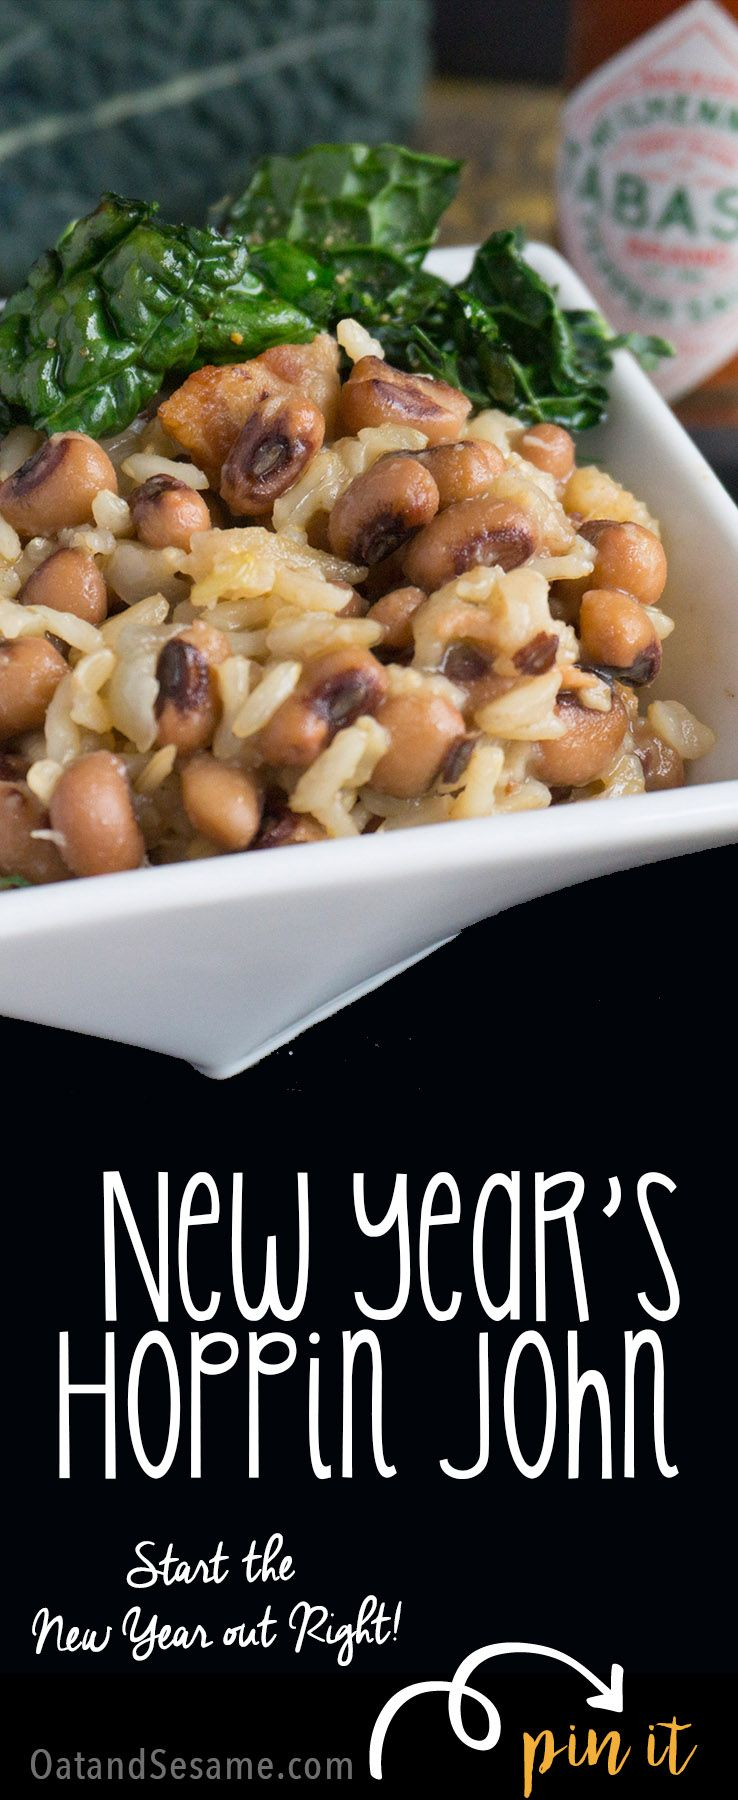 Skillet Hoppin' John Southern Black Eyed Peas and Rice